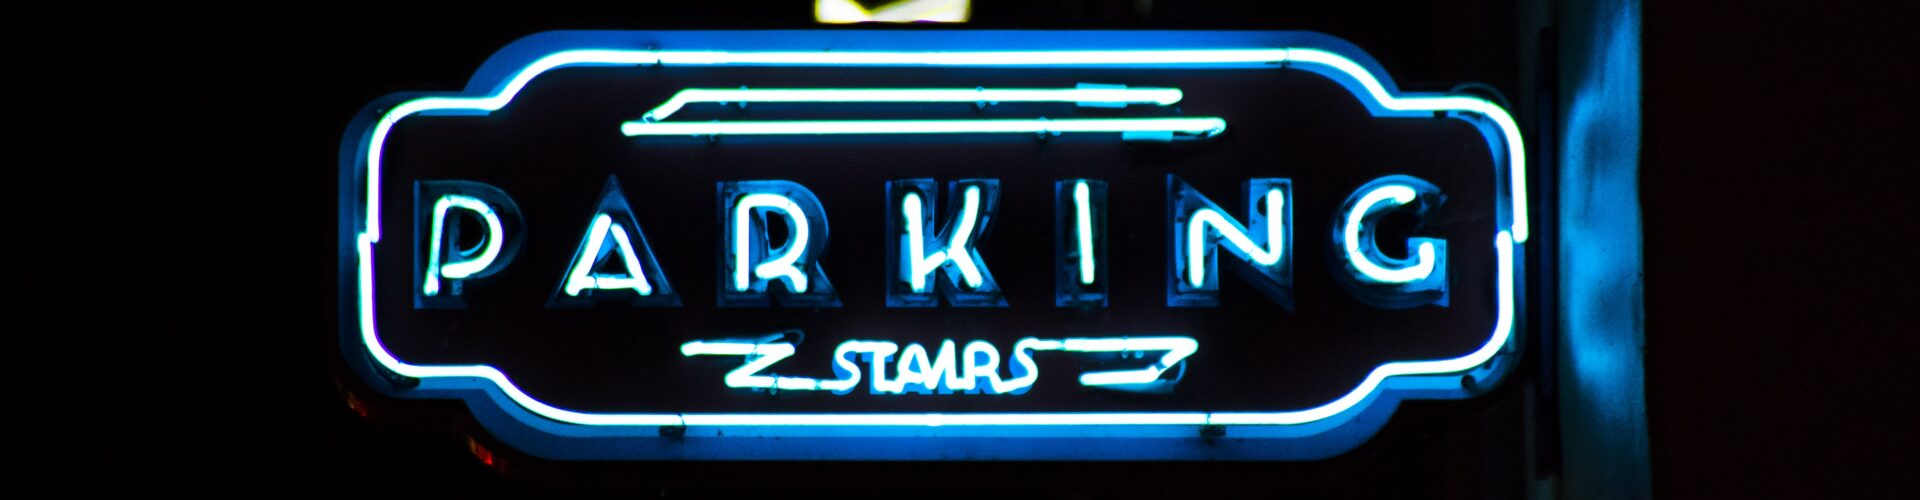 Blue neon sign spelling the word